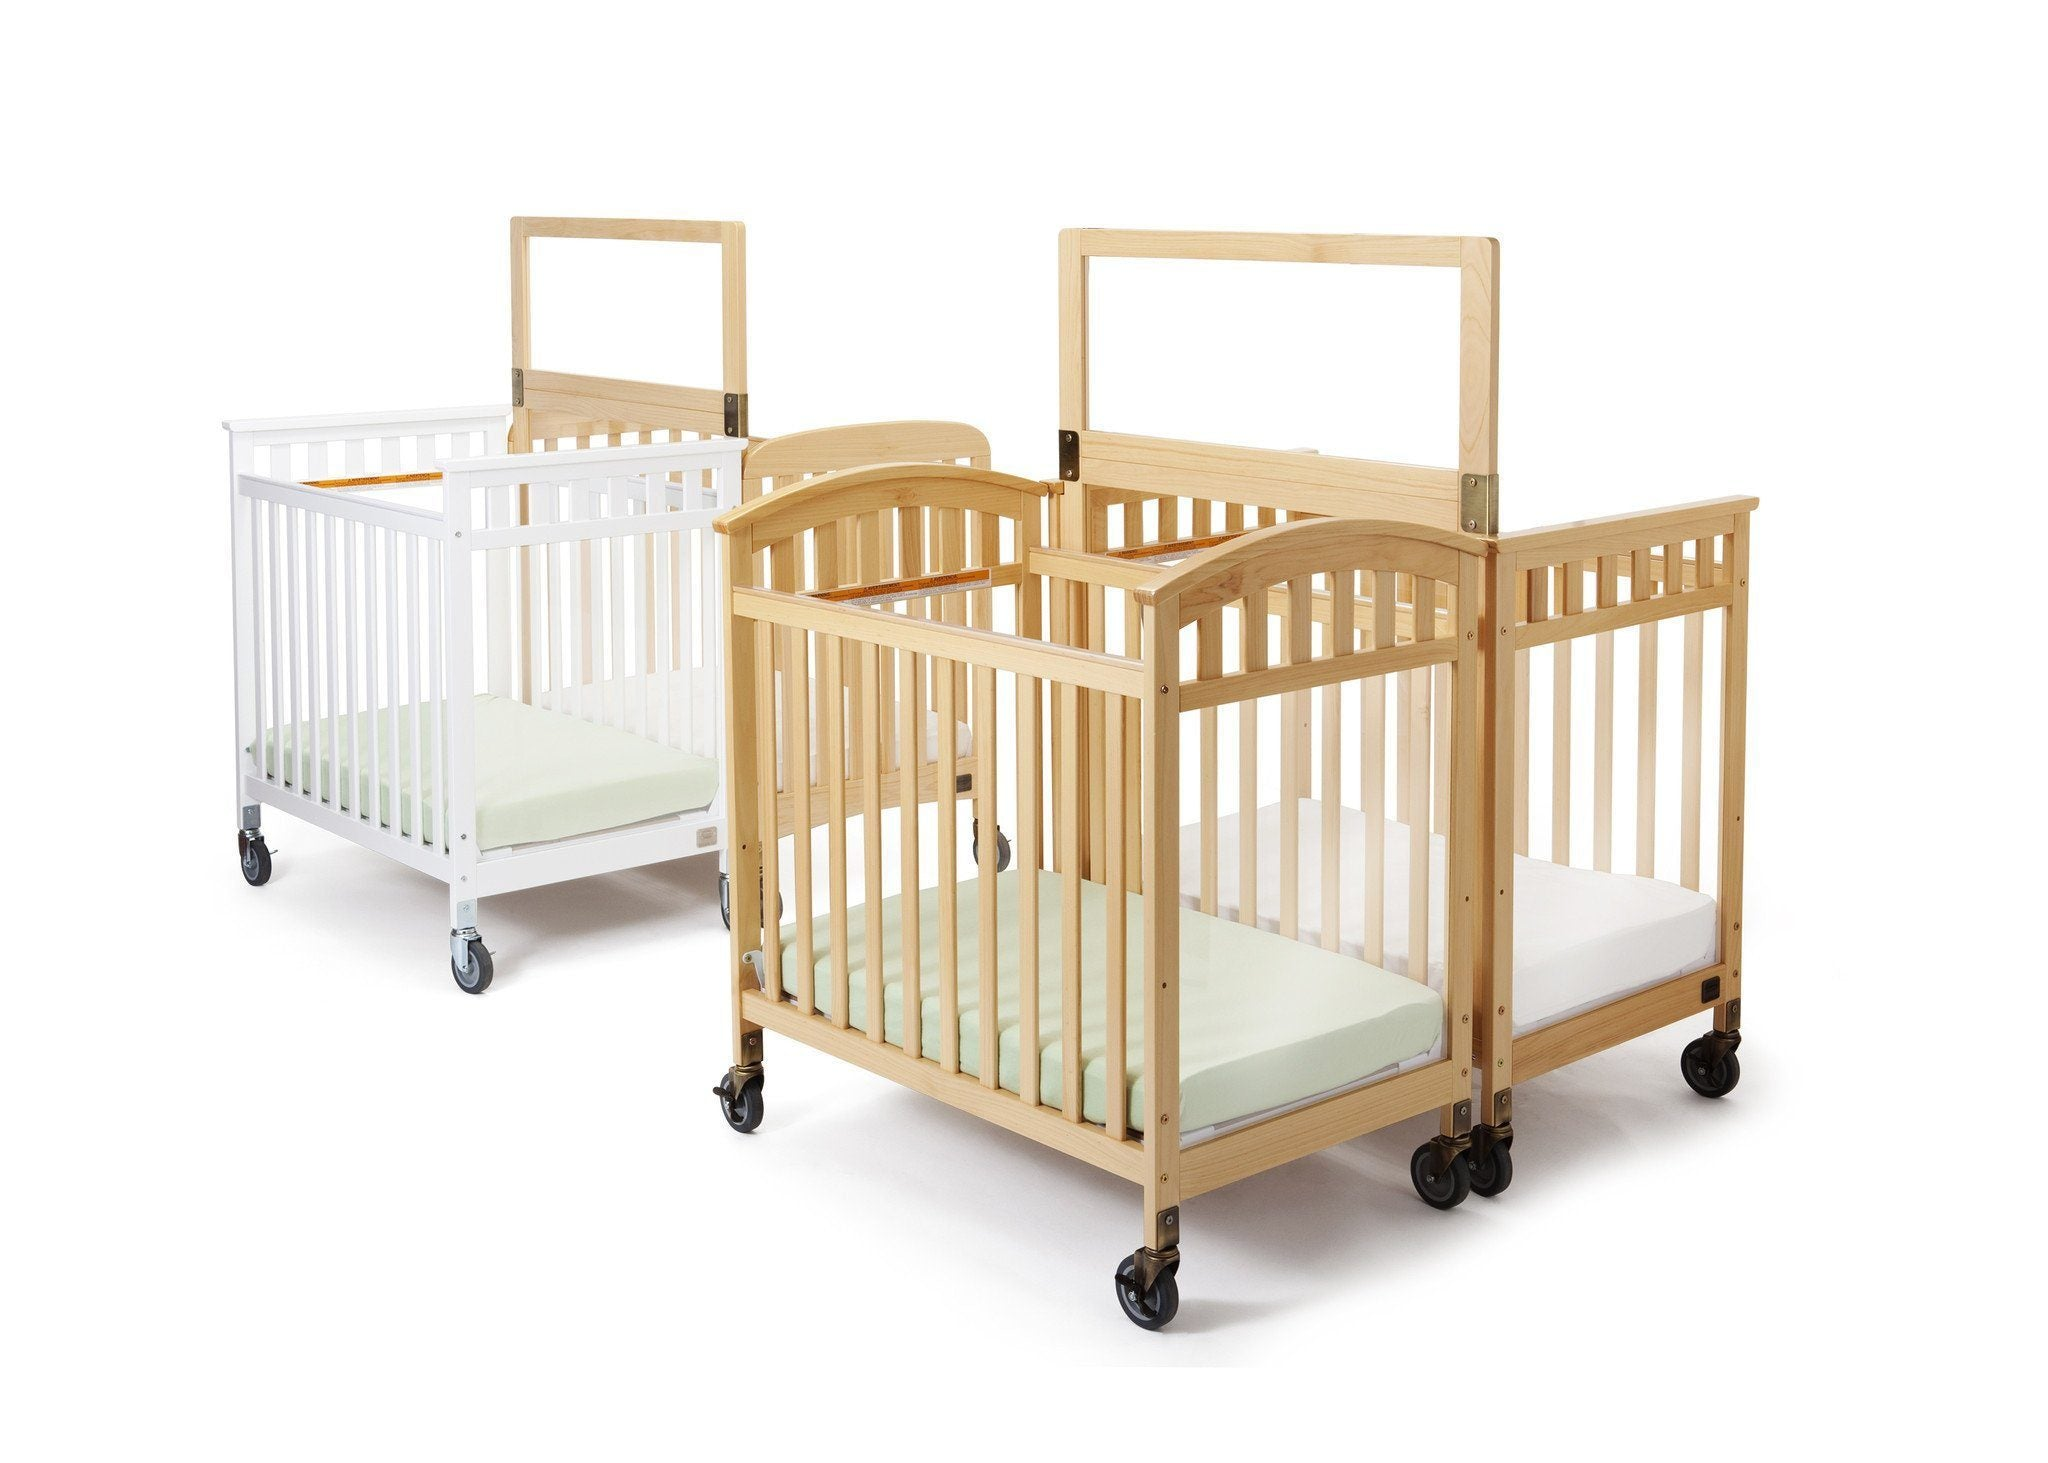 Simmons Kids Natural (260) Sweet Dreamer Safe Barrier Side View a1a